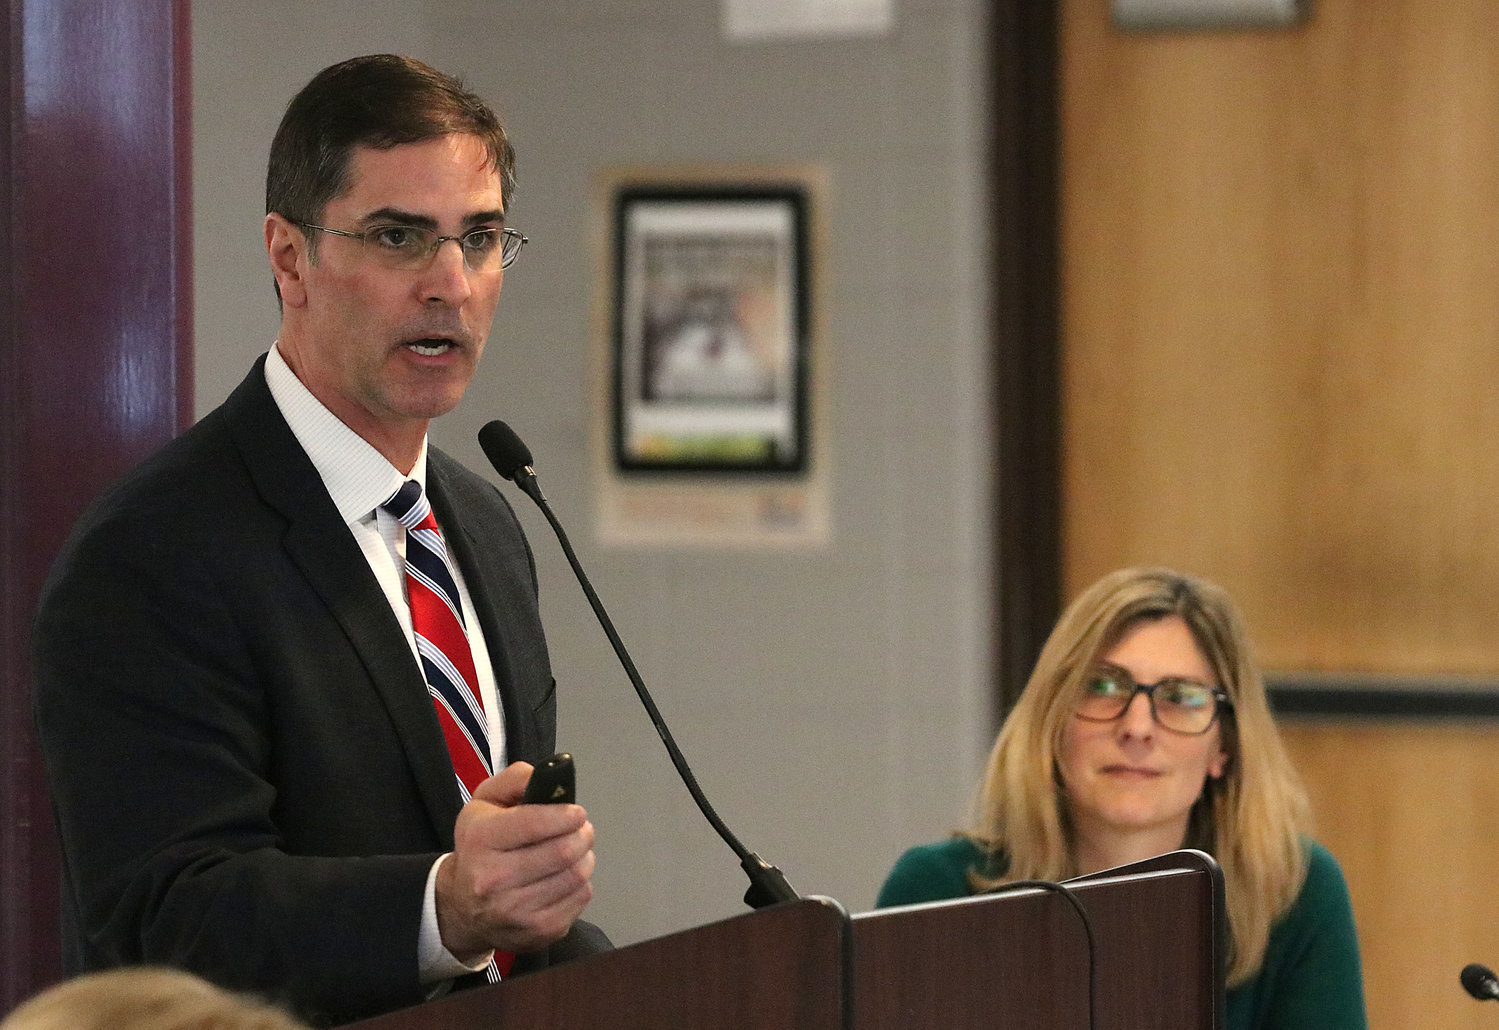 Dr. Mario Andrade addresses the school committee during budget talks earlier this year. Looking on is school committee chairwoman Erin Schofield, who announced his resignation Monday evening.